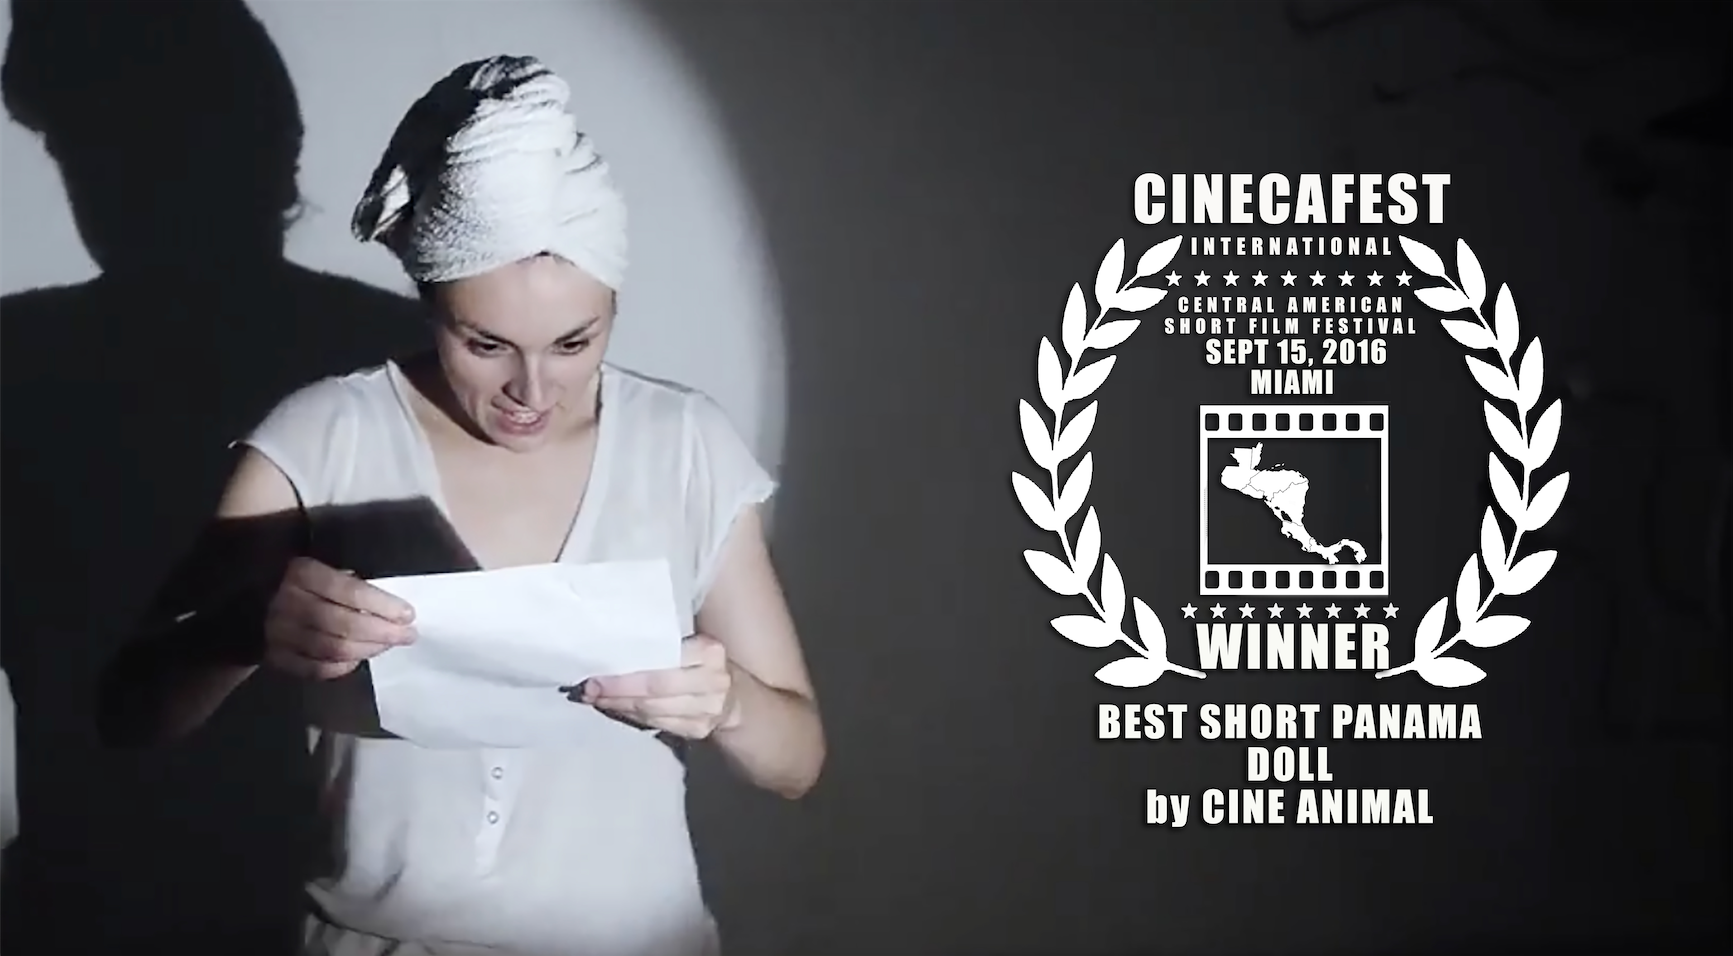 CINECAFEST BEST SHORT PANAMA DOLL.png